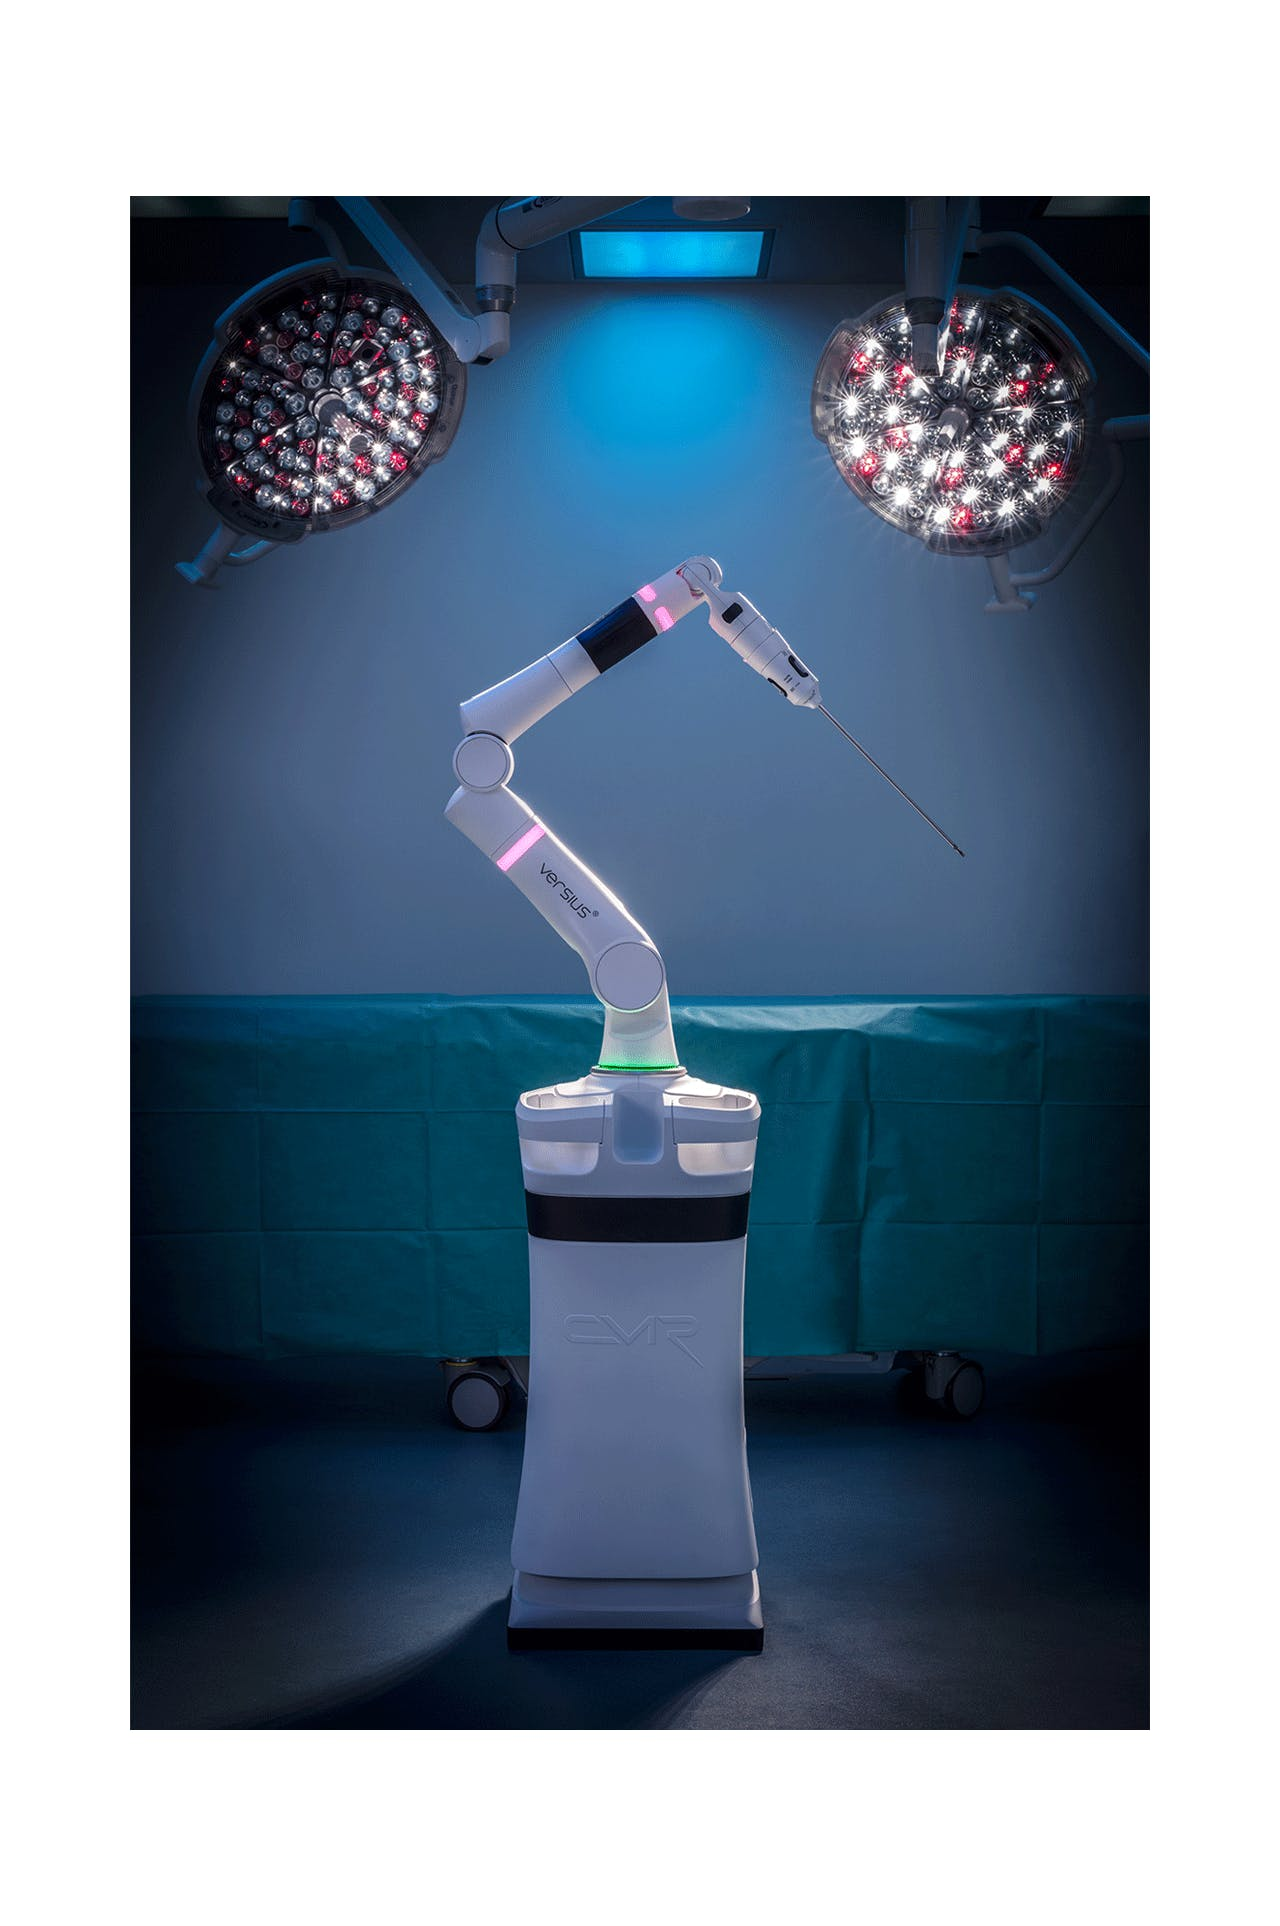 A New Robot Surgeon for the UK